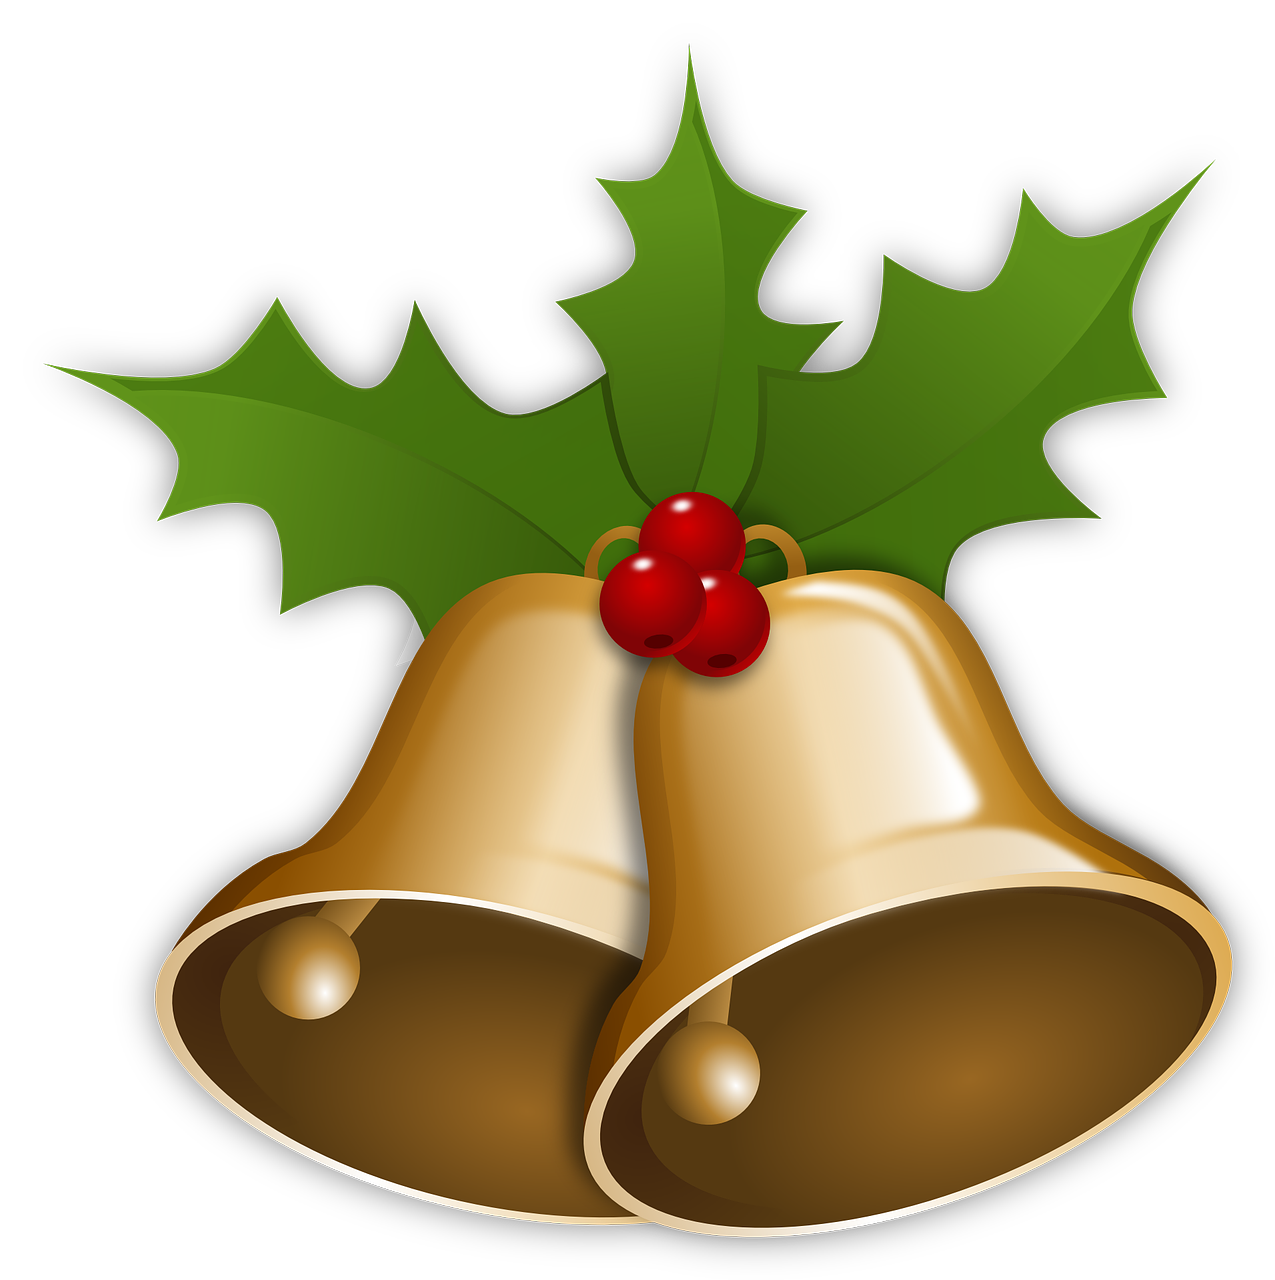 Celebrate the season with. Transparent holly holiday clip art royalty free library